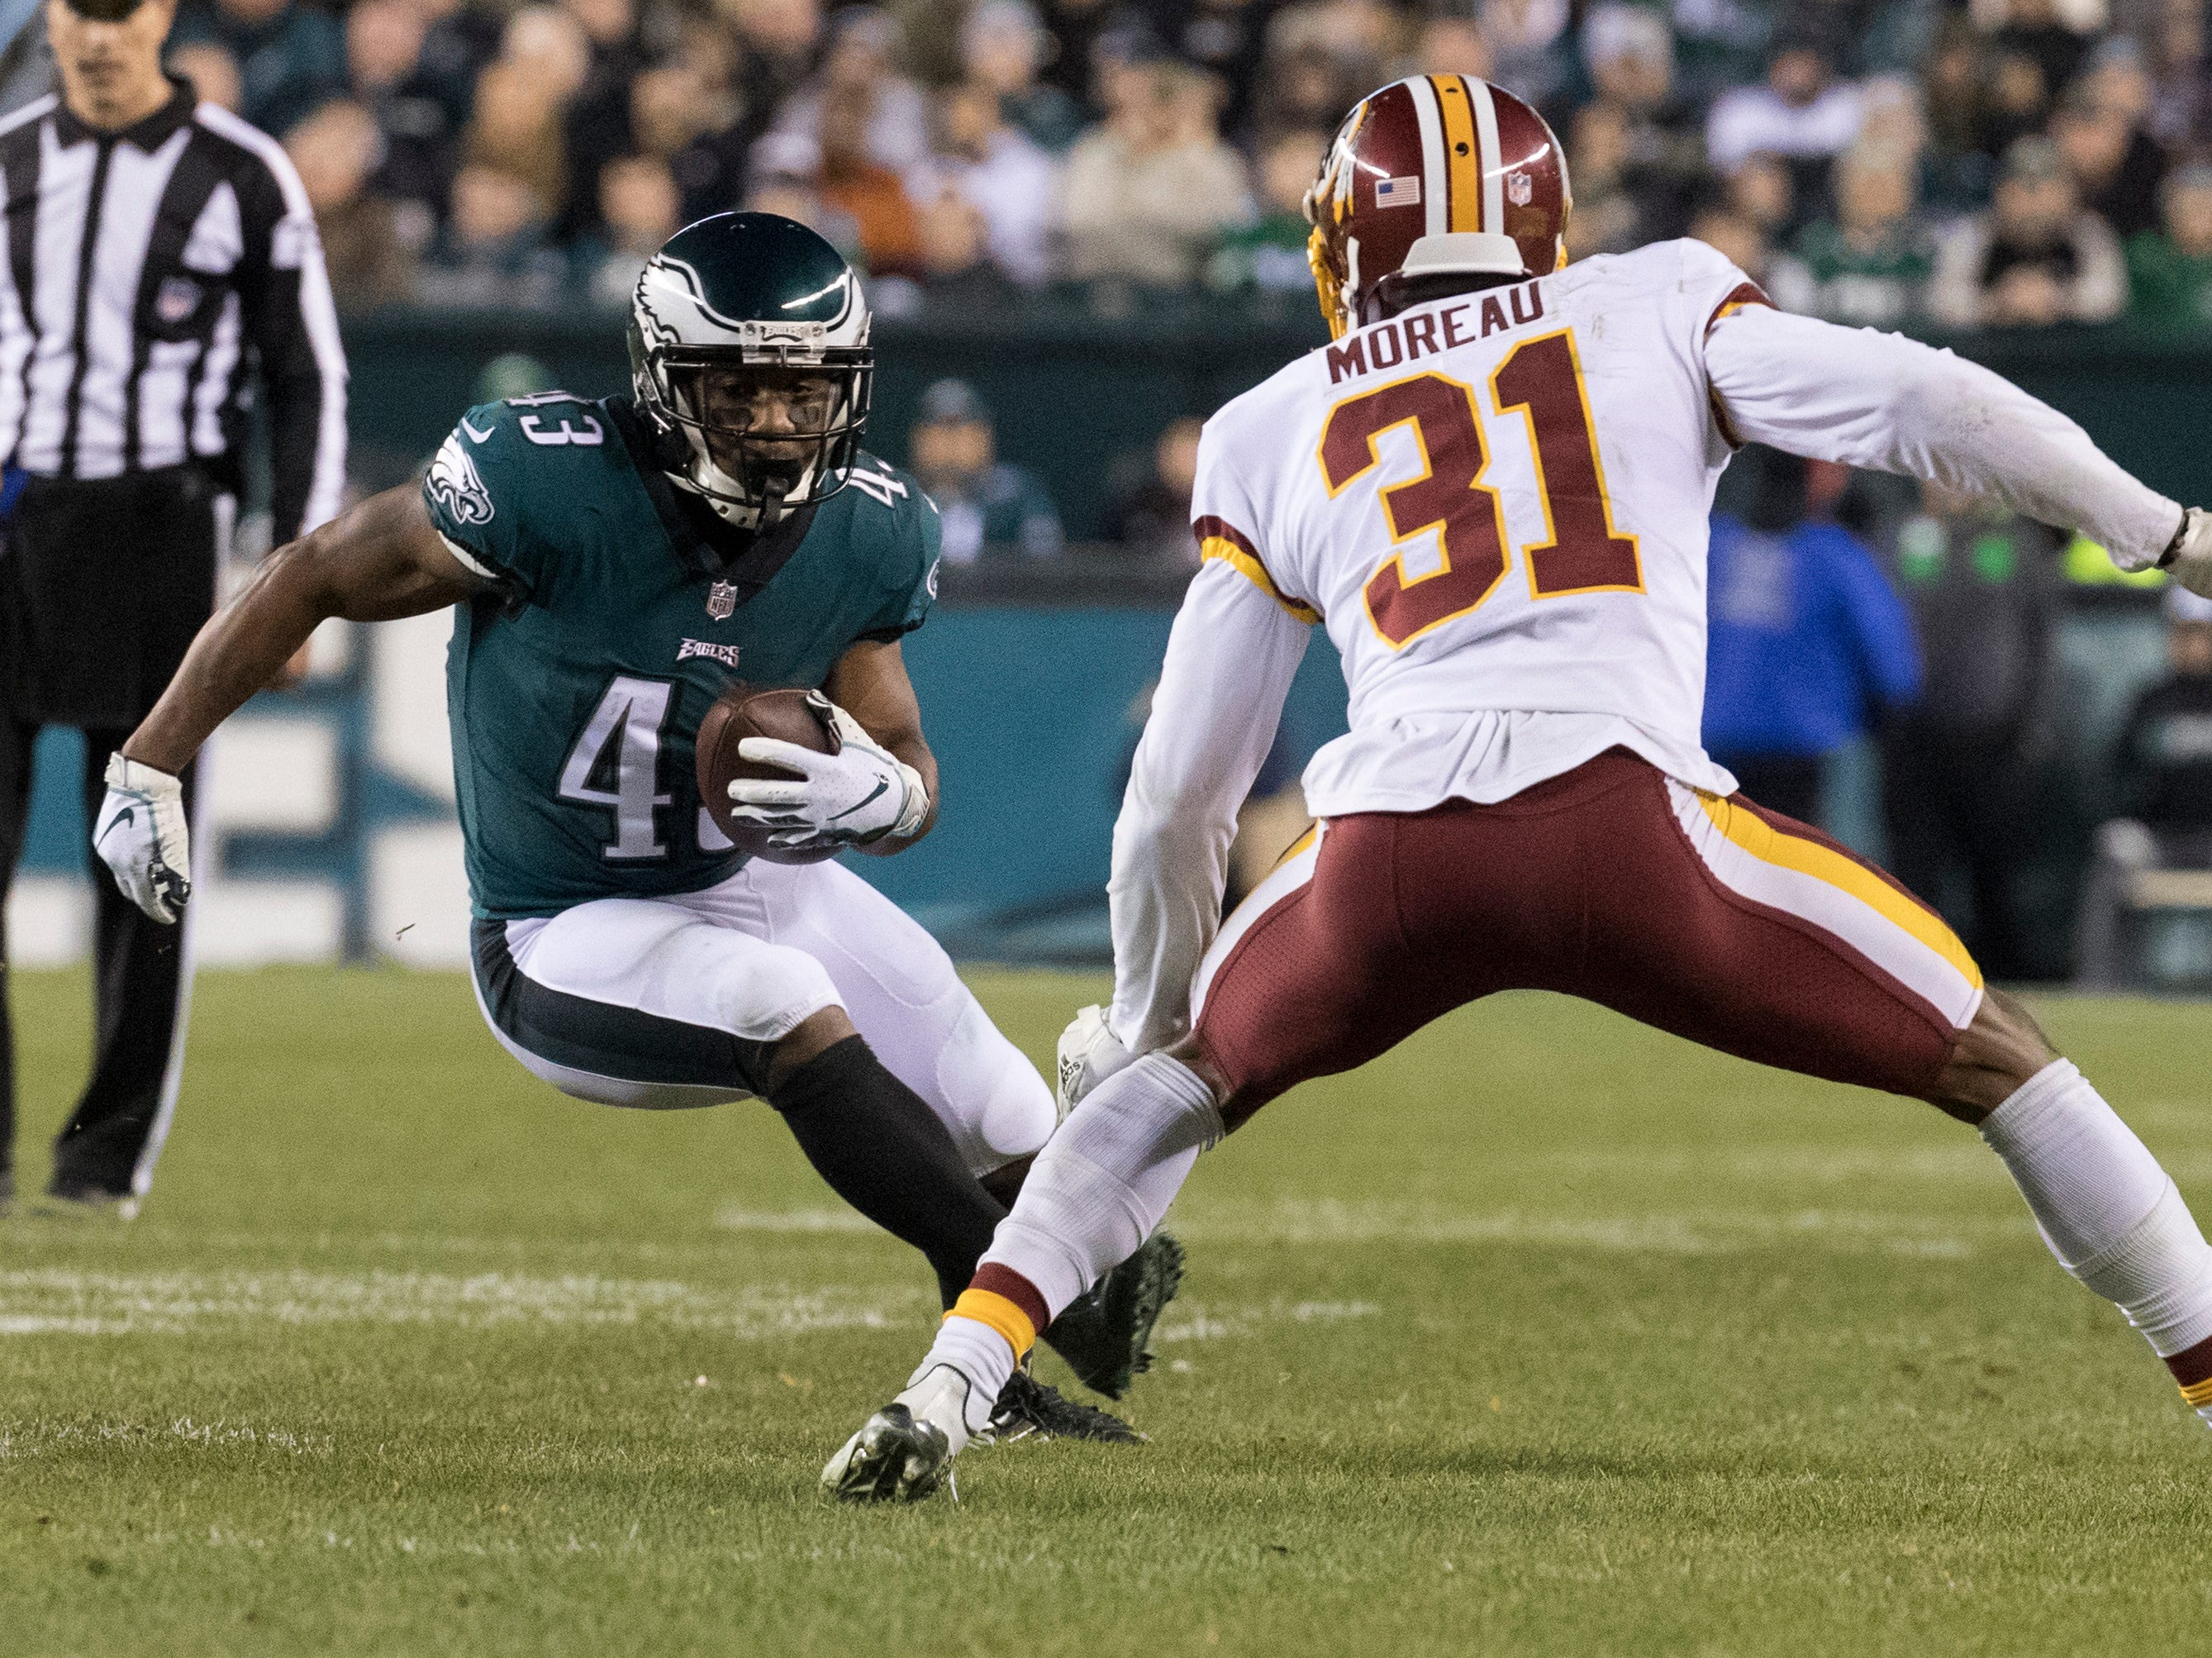 Eagles' Darren Sproles (43) cuts back against Washington's Fabian Moreau (31) Monday night.